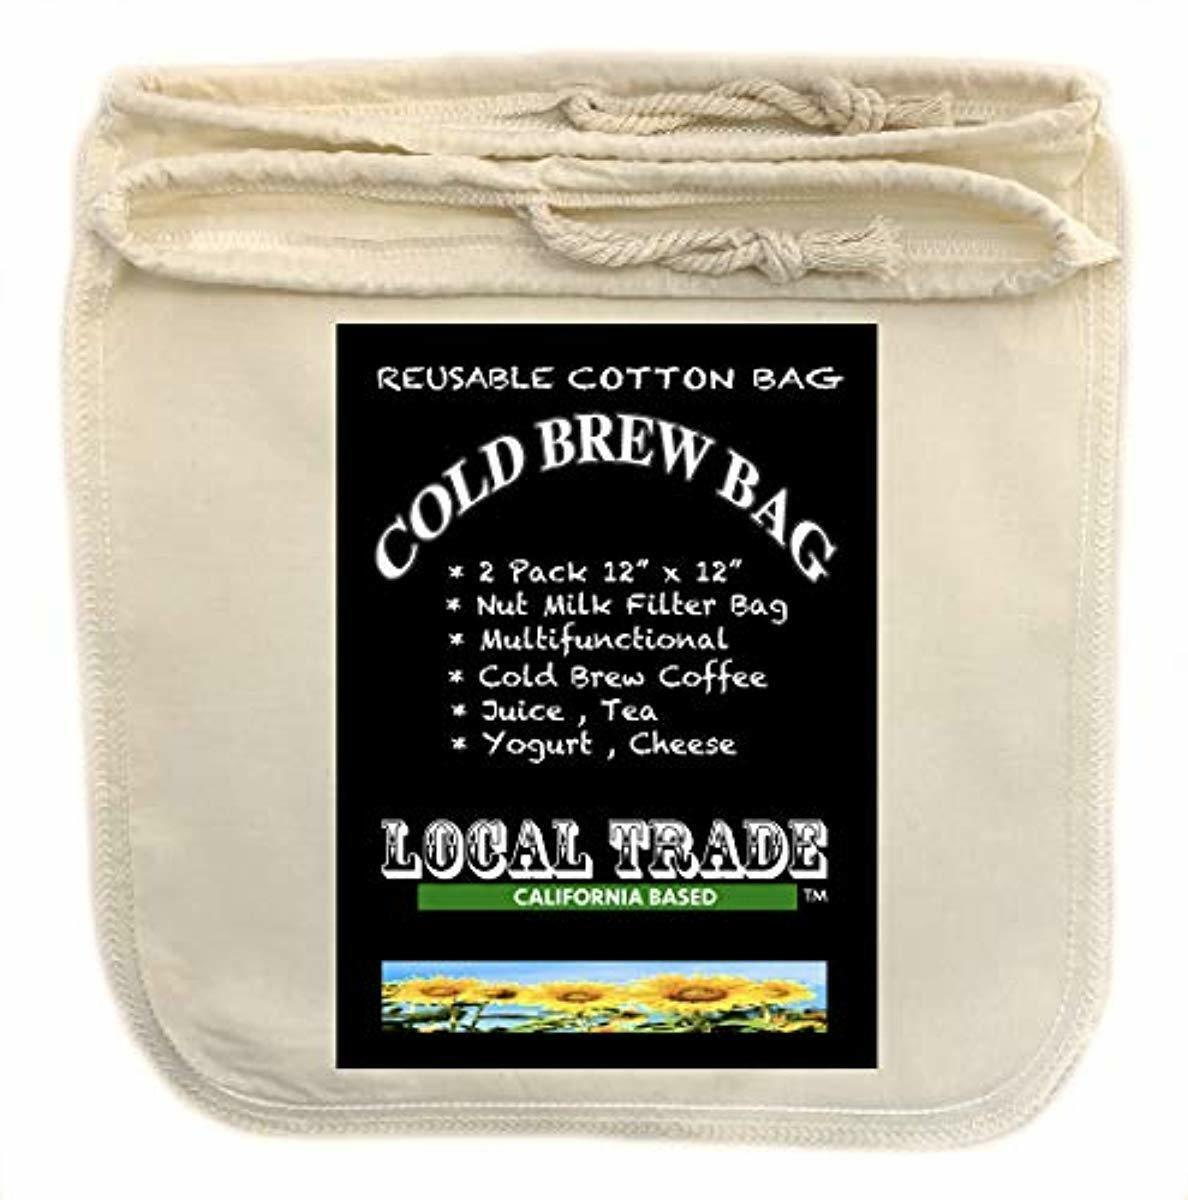 Cotton Cold Brew Coffee Bags - Large 12 x 12 Inch Reusable